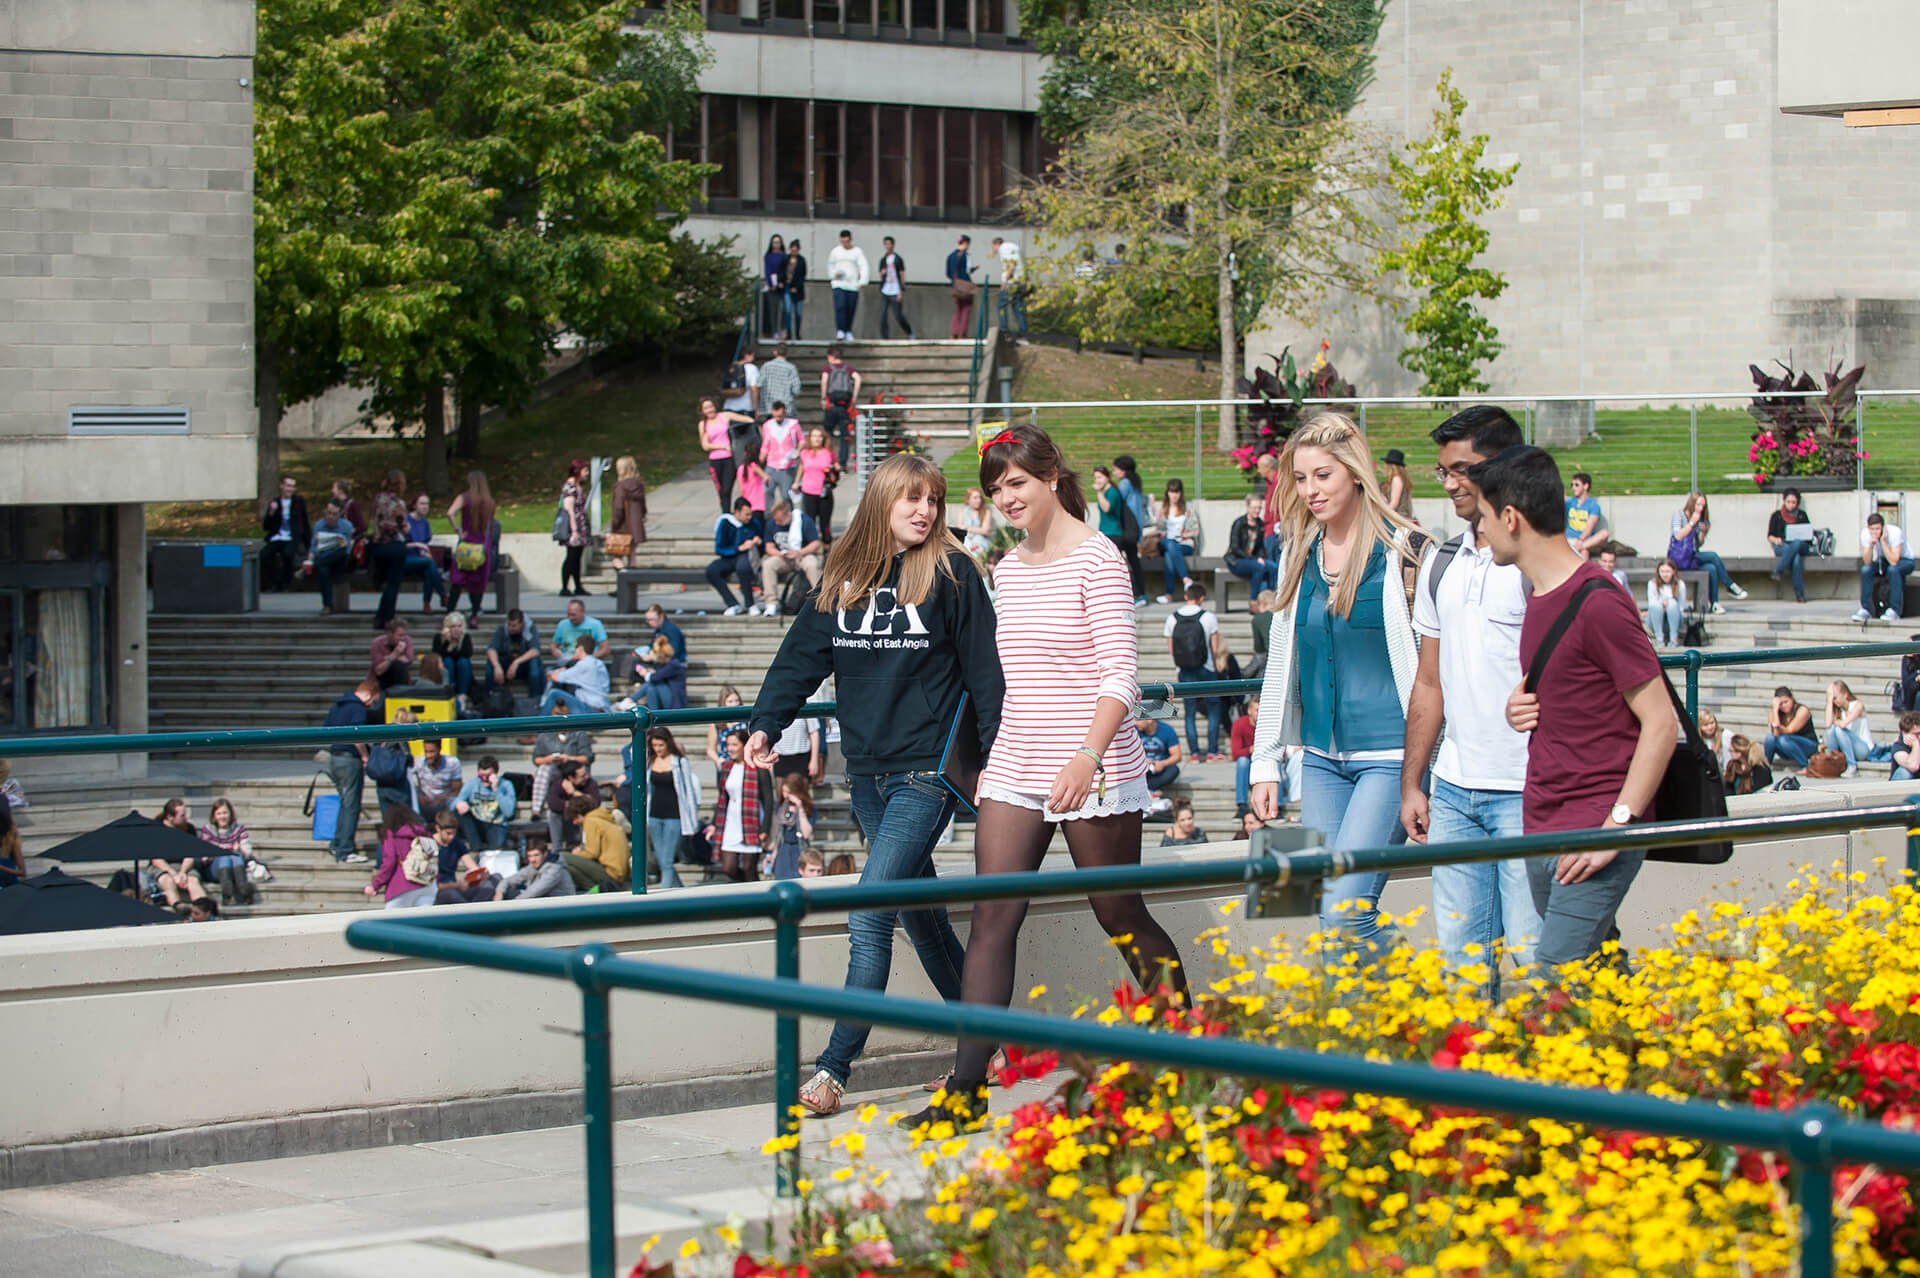 International students walking in The Square